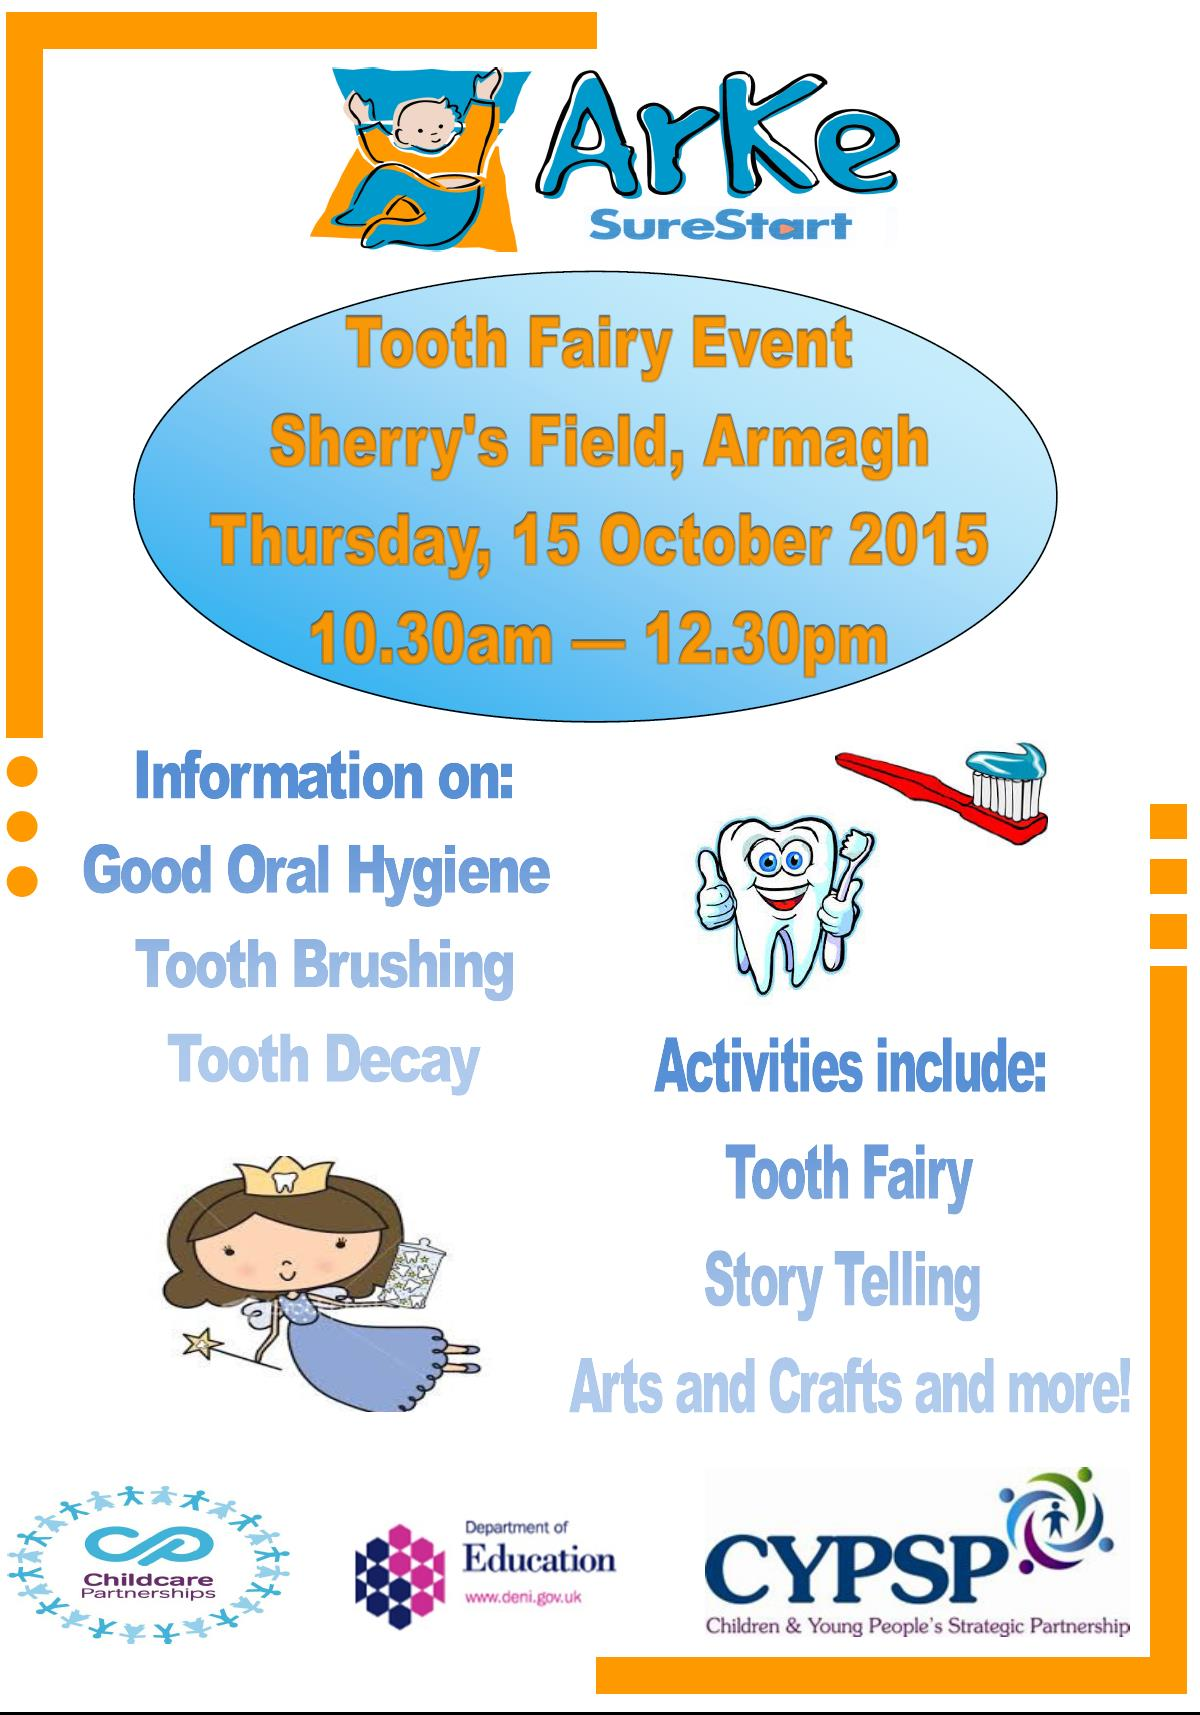 Tooth Fairy Event Armagh Children And Young People S Strategic Partnership Cypsp